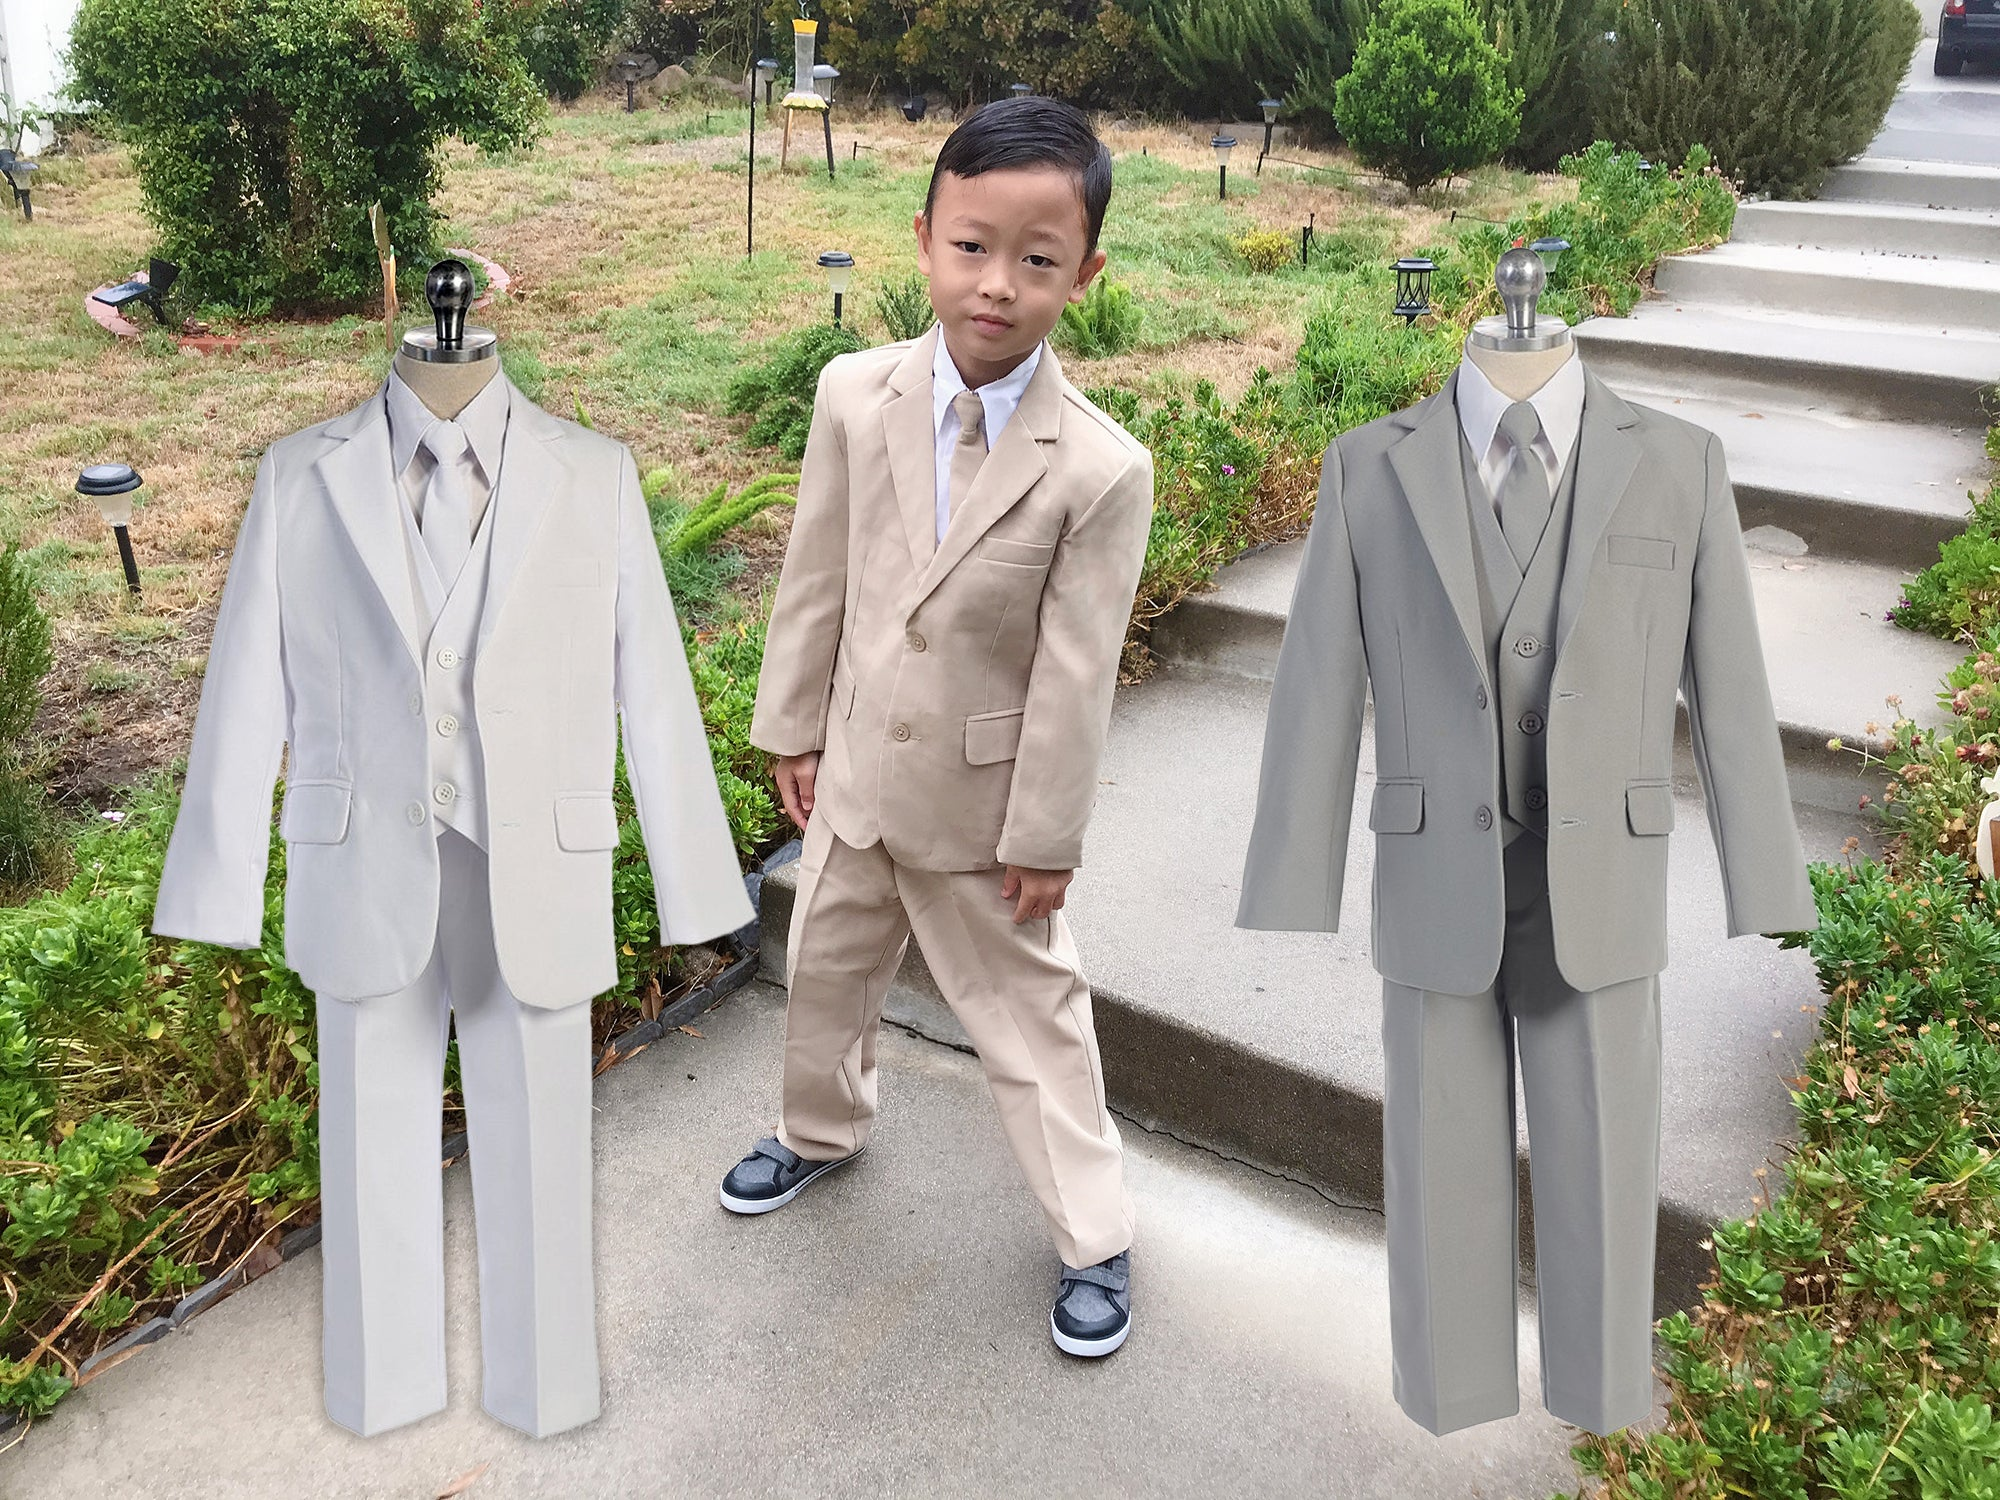 6415e60d2 Baby Toddler to Big Boy 5-Piece Suit Tuxedo Size 6 months to 20 ...